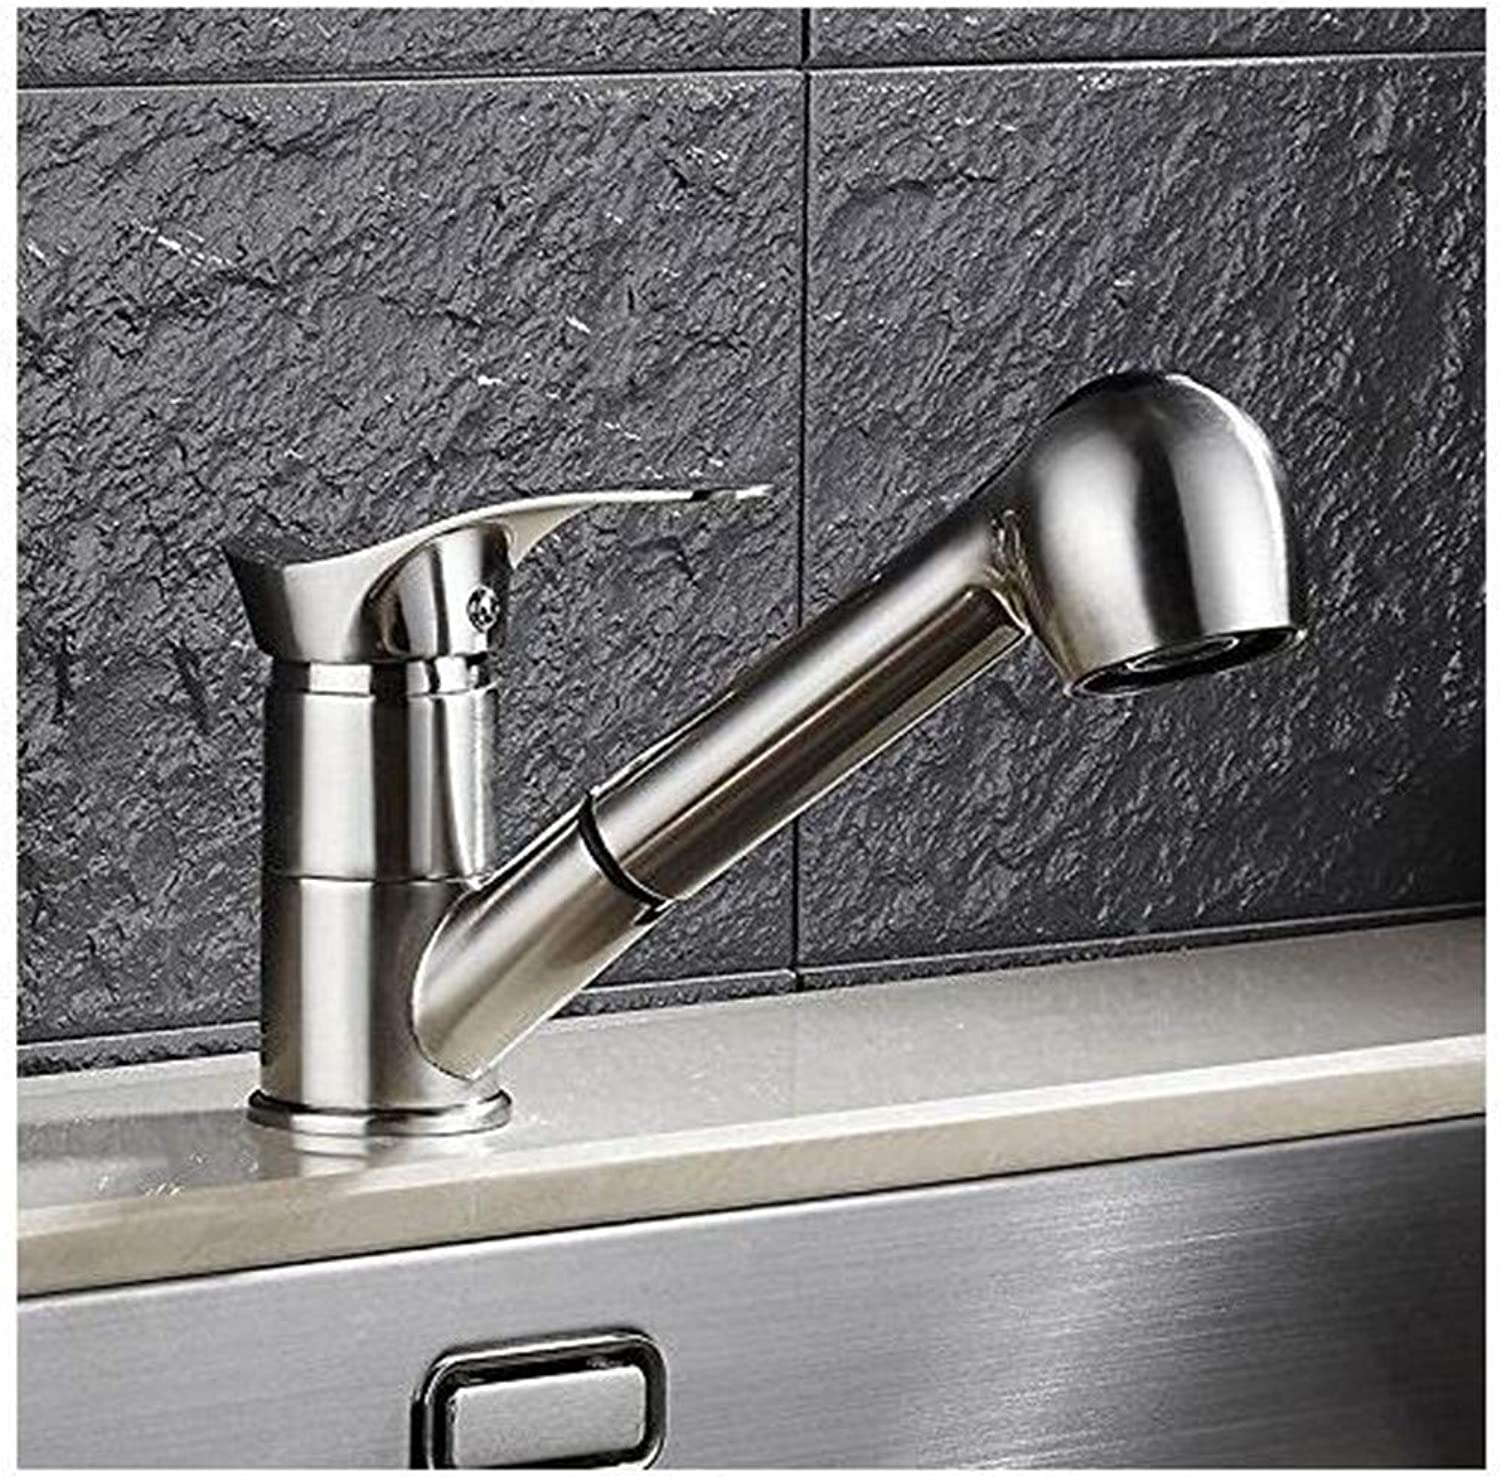 Chrome Brass Kitchen Faucet Brushed Nickel Kitchen Faucet Sink redational Drawing 360 Degree Swivel Pull Out Sink Faucet Solid Brass Water Tap